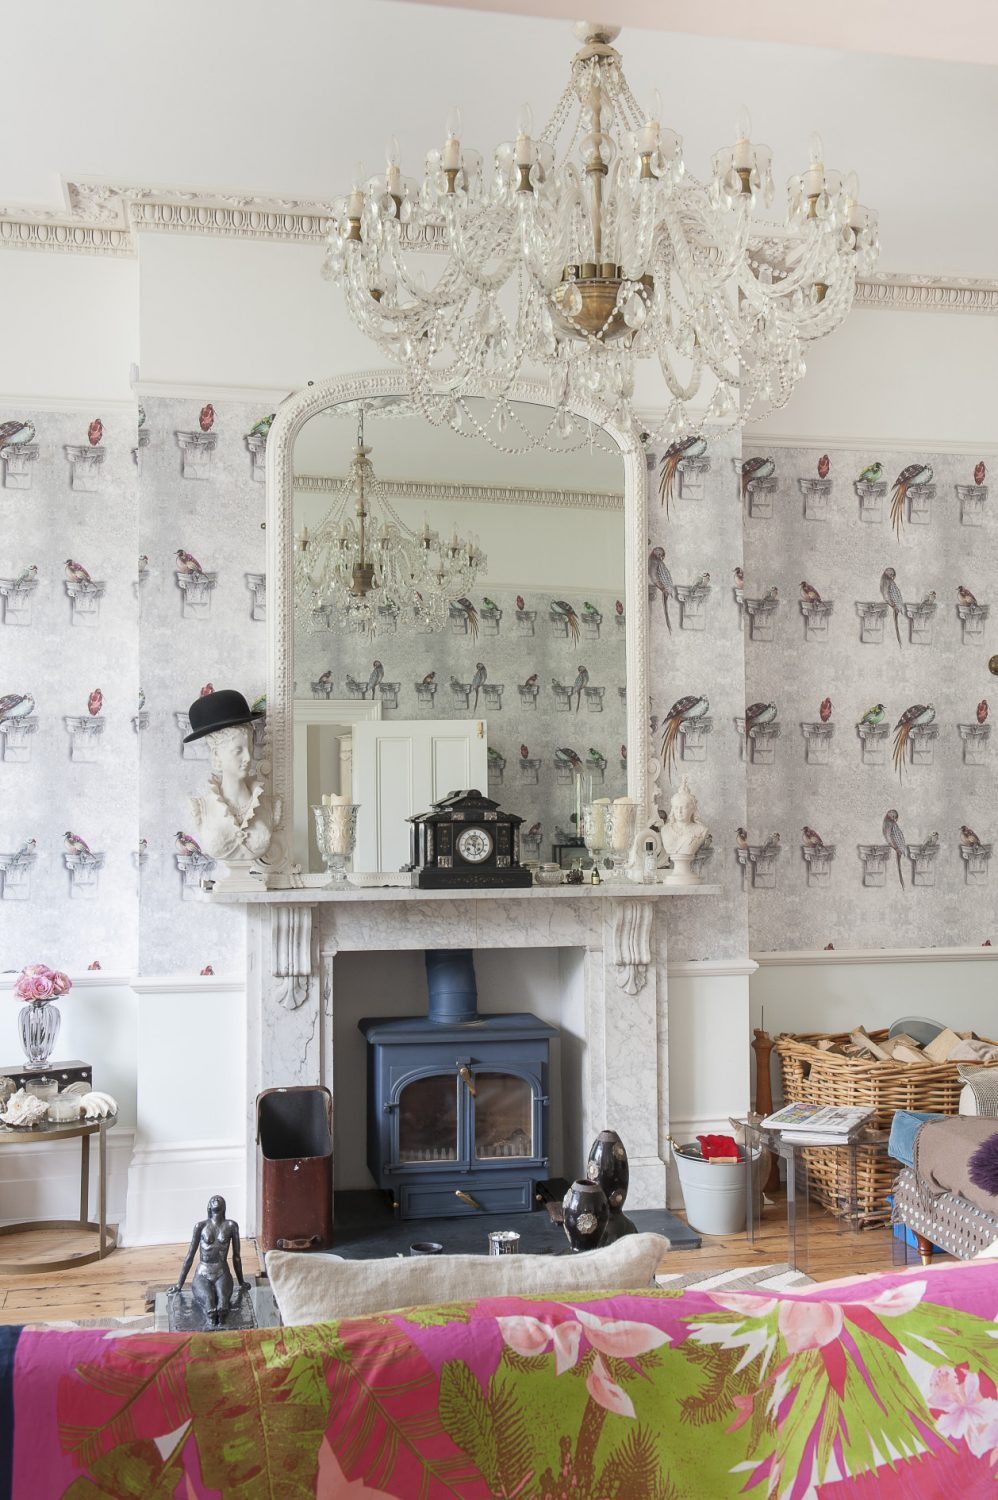 Lighting is a major feature of each room. The huge chandelier in the drawing room was a Bexhill find and the fun parrot wallpaper is by Louise Body